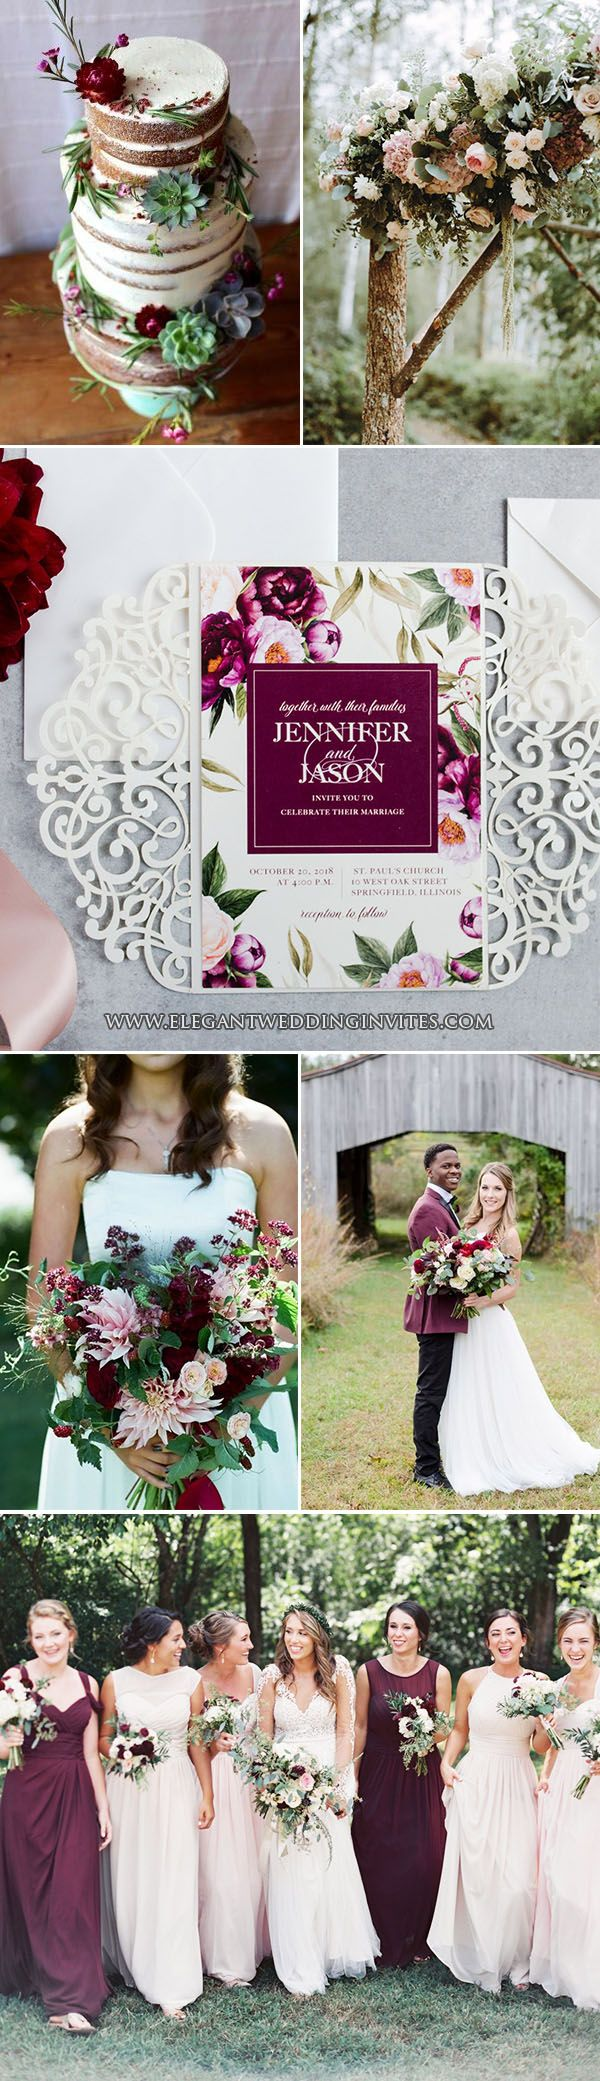 Wedding decorations unique october 2018  Chic Rustic Wedding Themes with Matching Invitations  Wedding